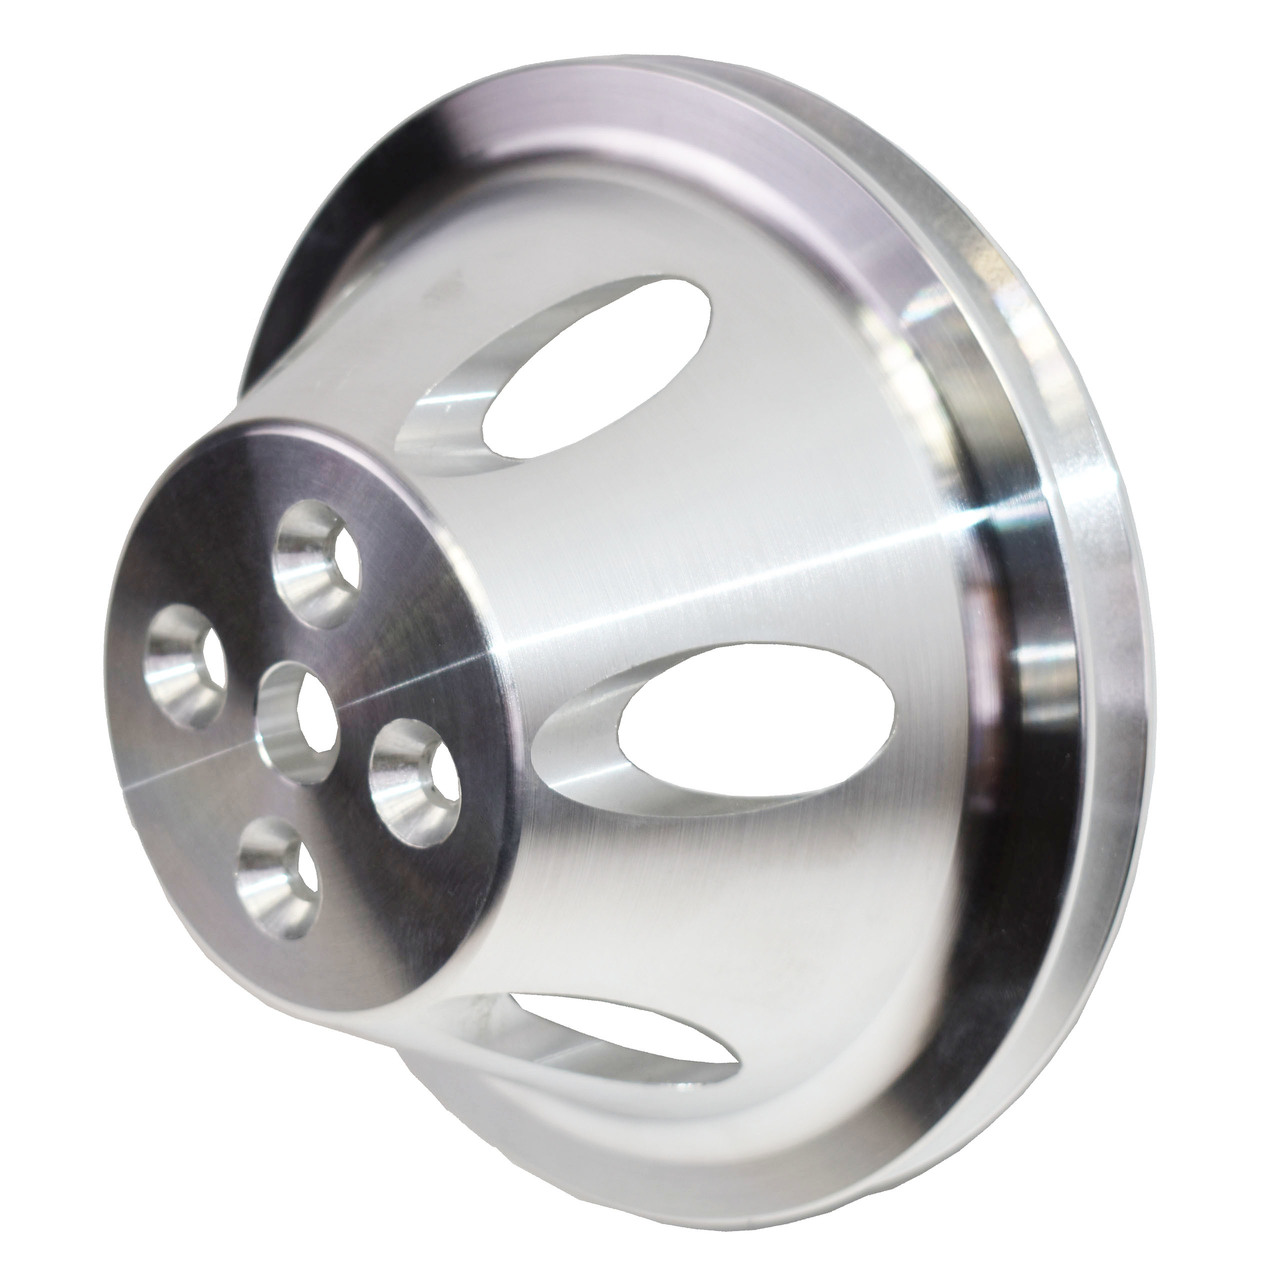 A-Team Performance Chevy Small Block Single-Groove Aluminum Short Water Pump Pulley